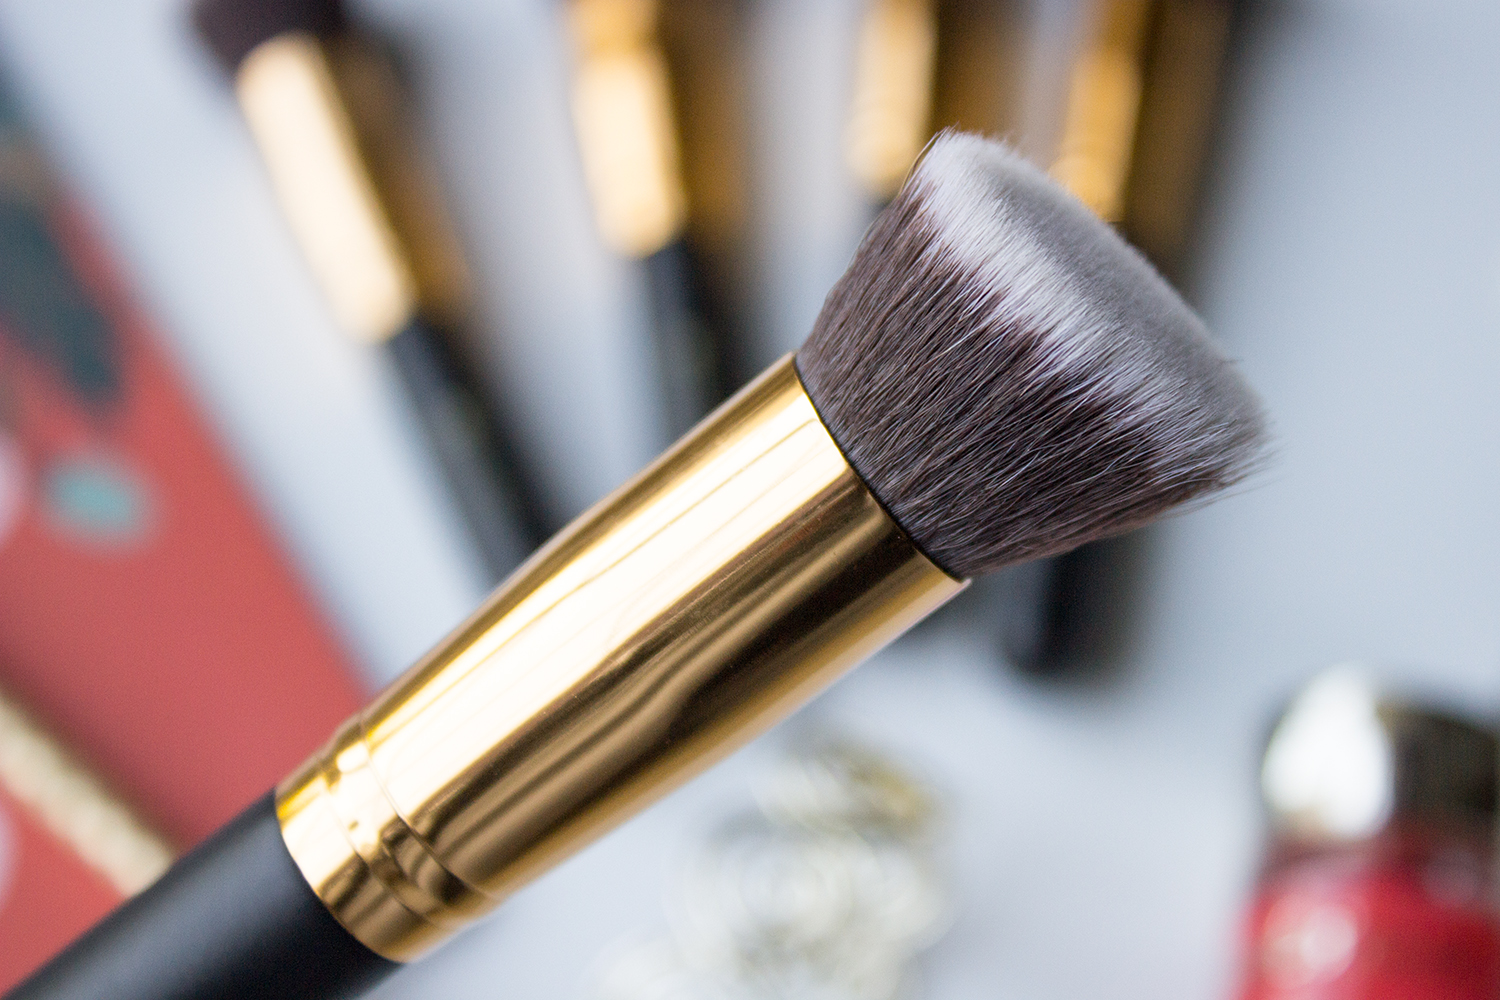 BH Cosmetics Sculpt & Blend Angled Contouring Face Brush